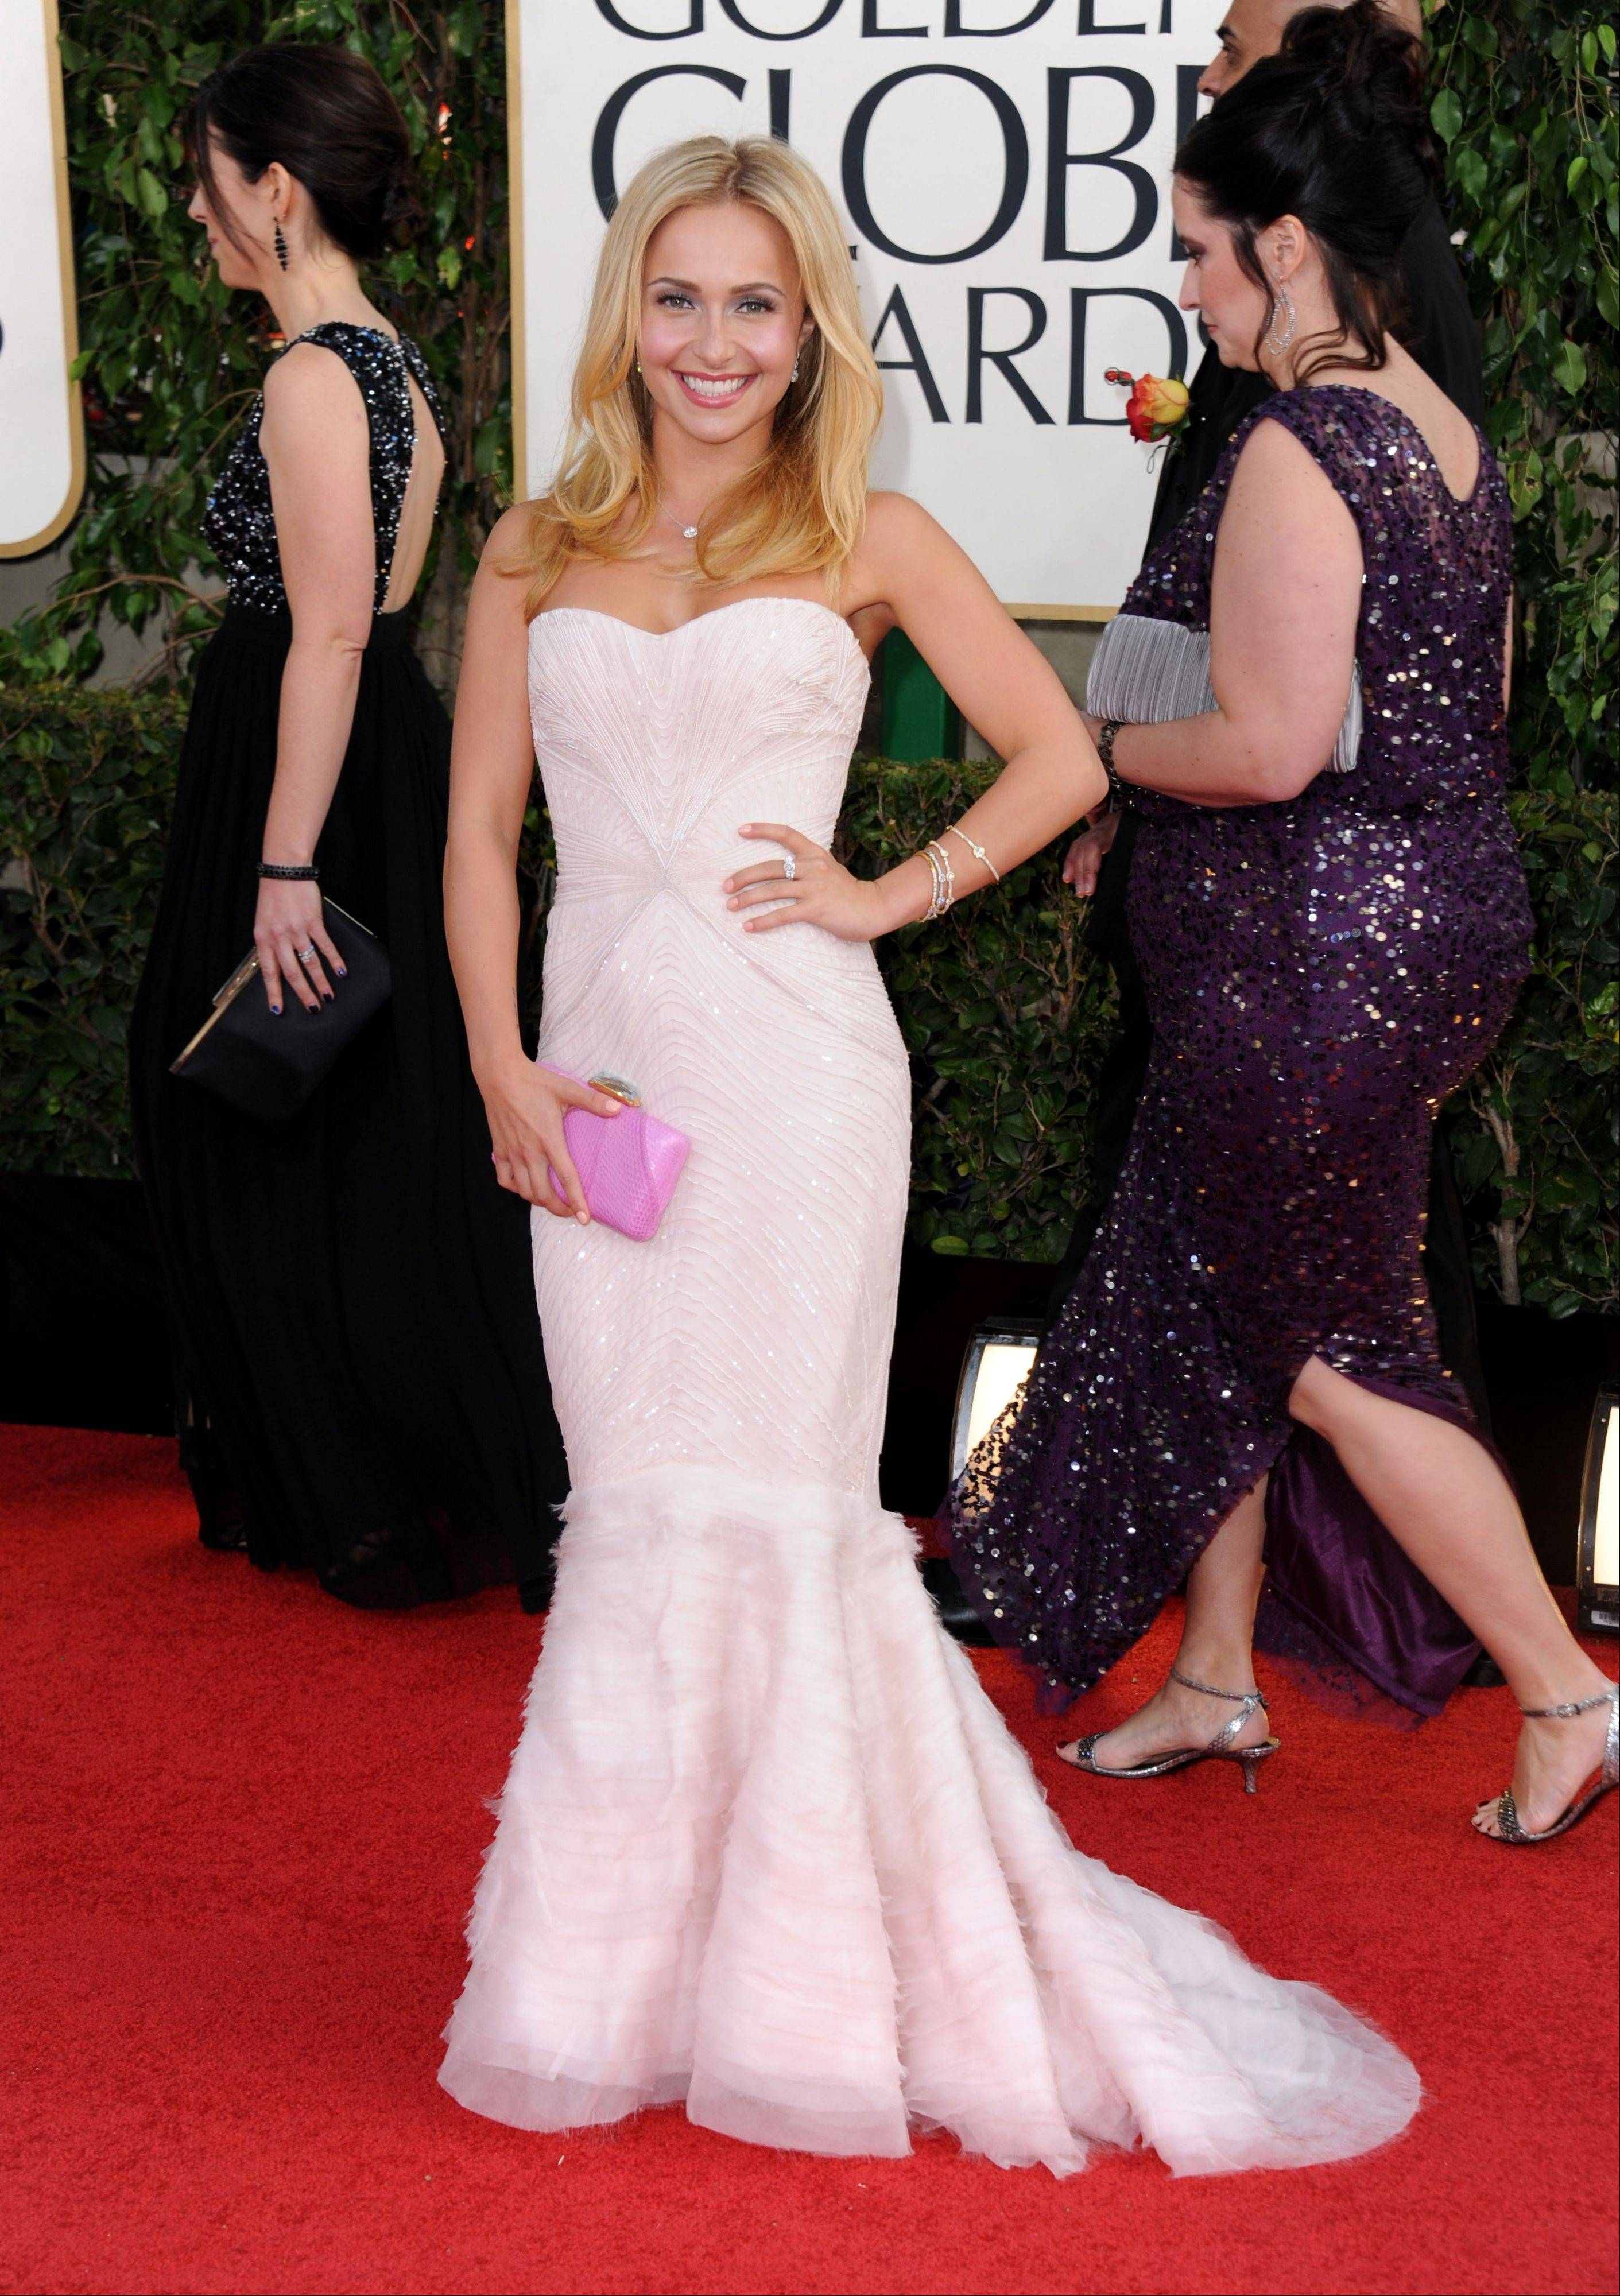 Actress Hayden Panettiere arrives at the 70th Annual Golden Globe Awards at the Beverly Hilton Hotel on Sunday Jan. 13, 2013, in Beverly Hills, Calif.